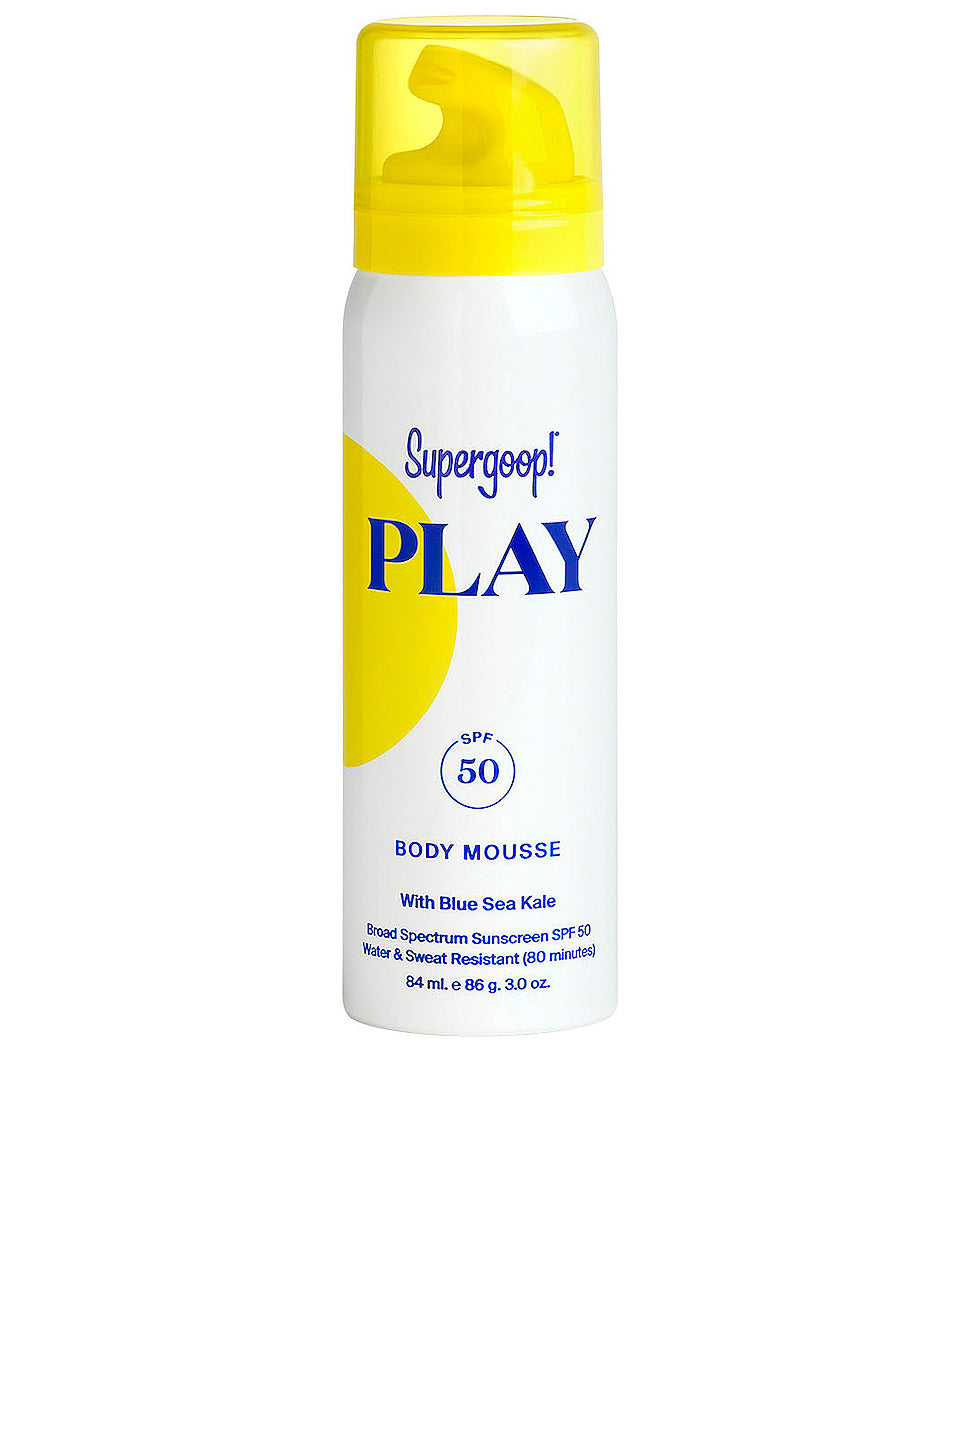 Supergoop - PLAY Body Mousse SPF 50 with Blue Sea Kale